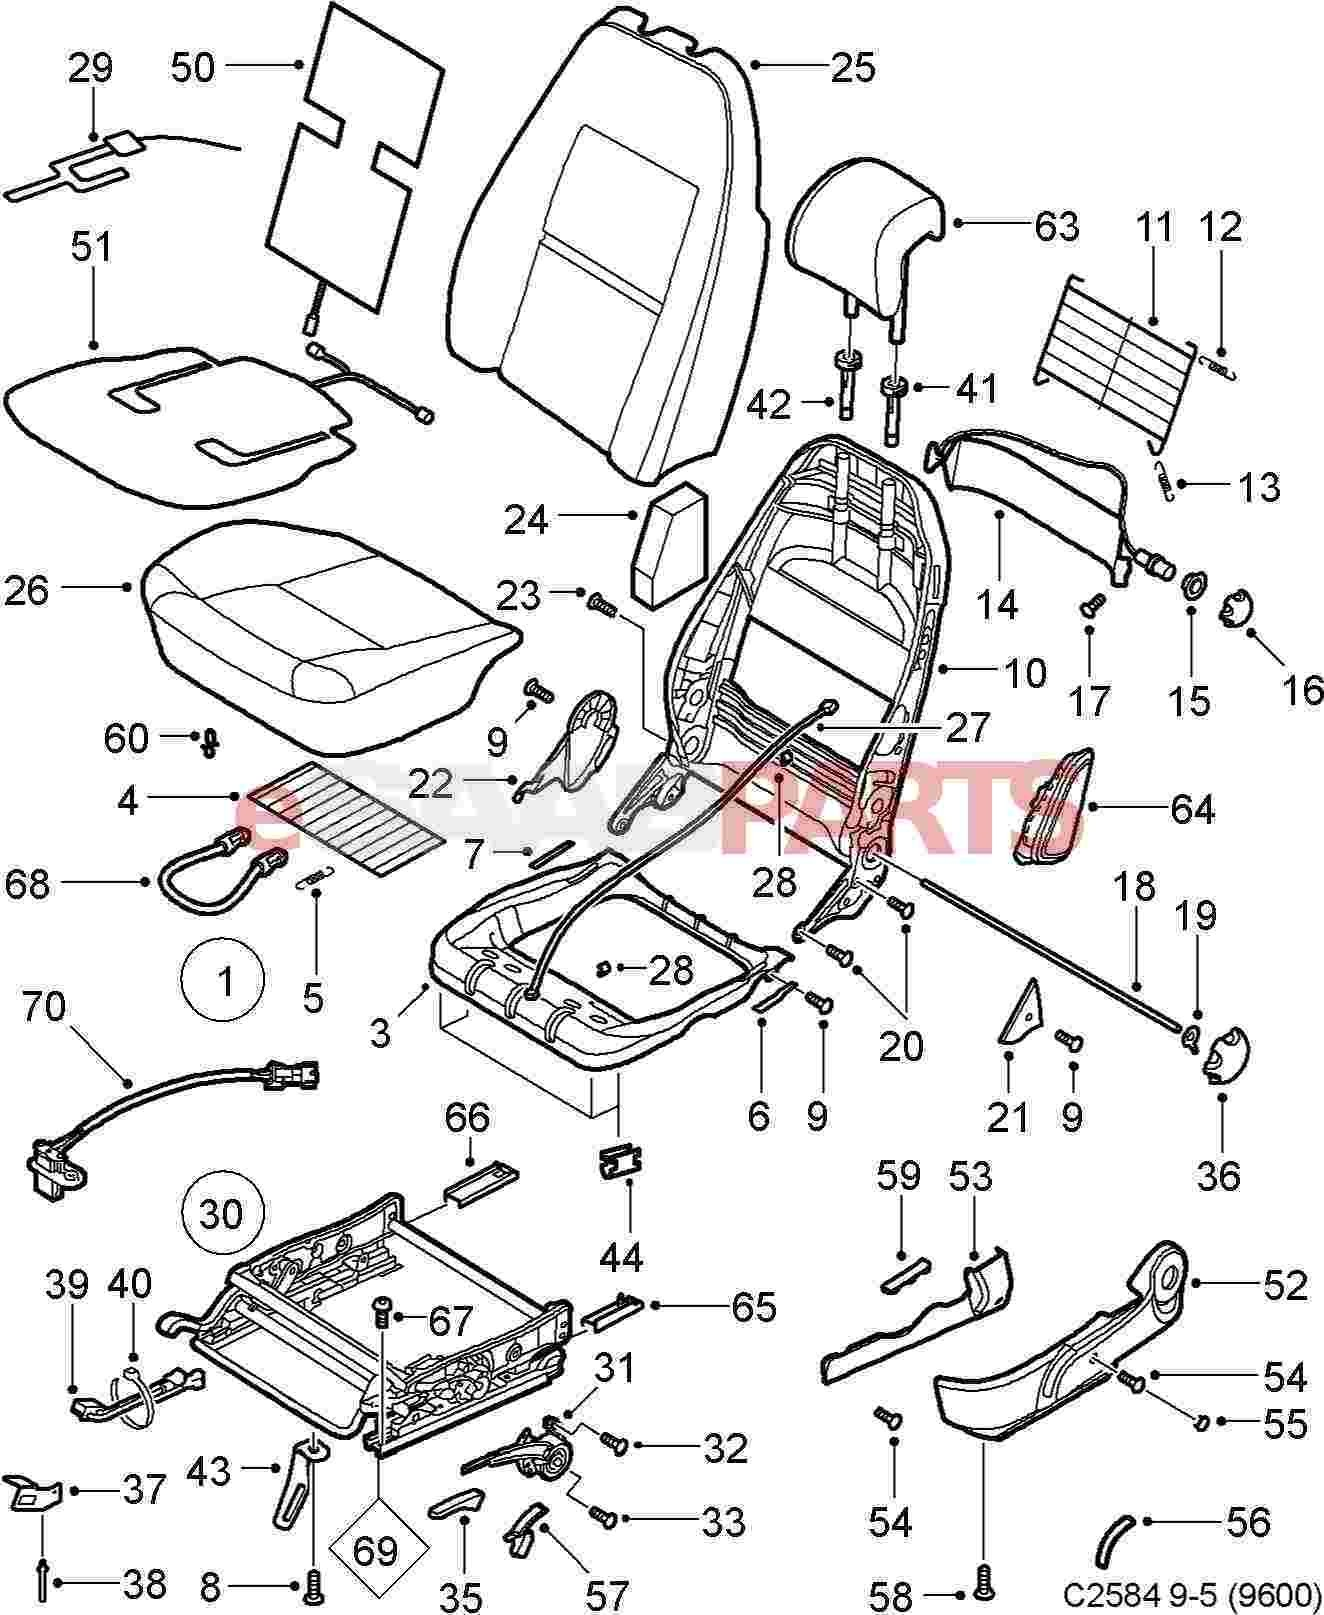 "Seat Belt Parts Diagram Esaabparts Of Seat Belt Parts Diagram Gravely Pm152m 21hp Kawasaki 52"" Deck"